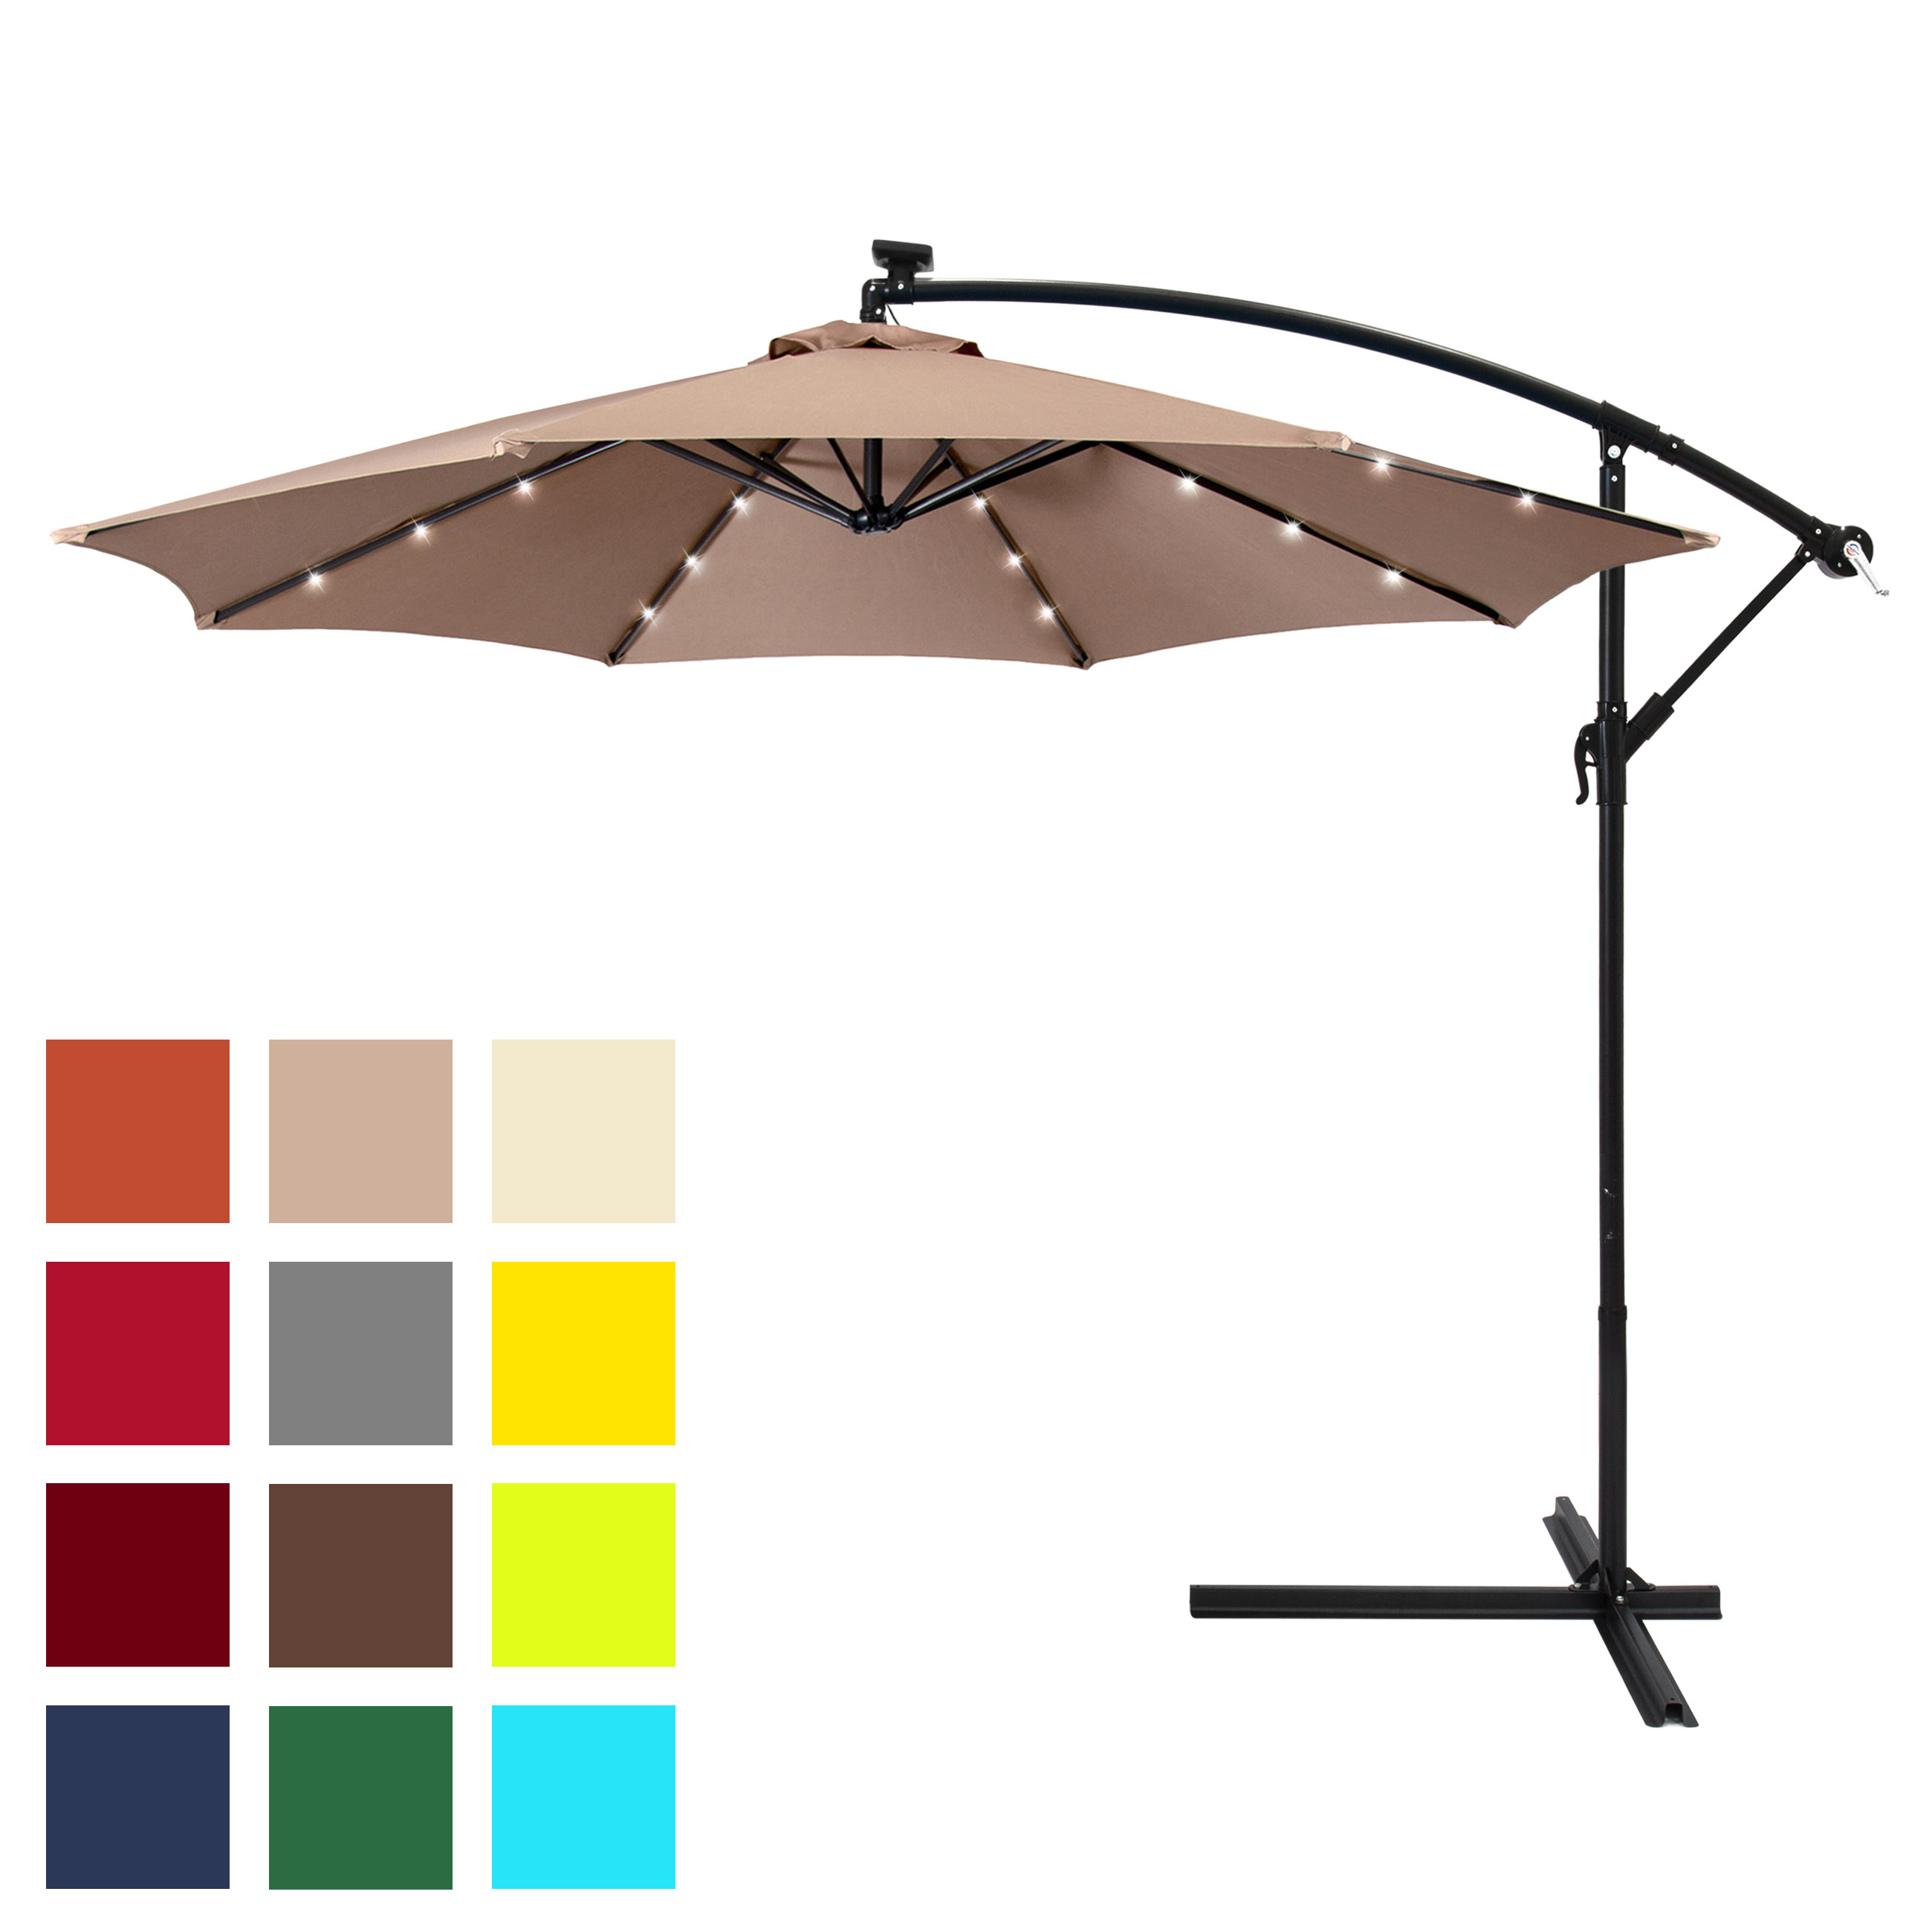 Best Choice Products 10Ft Solar Led Offset Patio Umbrella W/ Easy Tilt  Adjustment – Tan Throughout Most Recent Solar Powered Led Patio Umbrellas (Gallery 11 of 20)